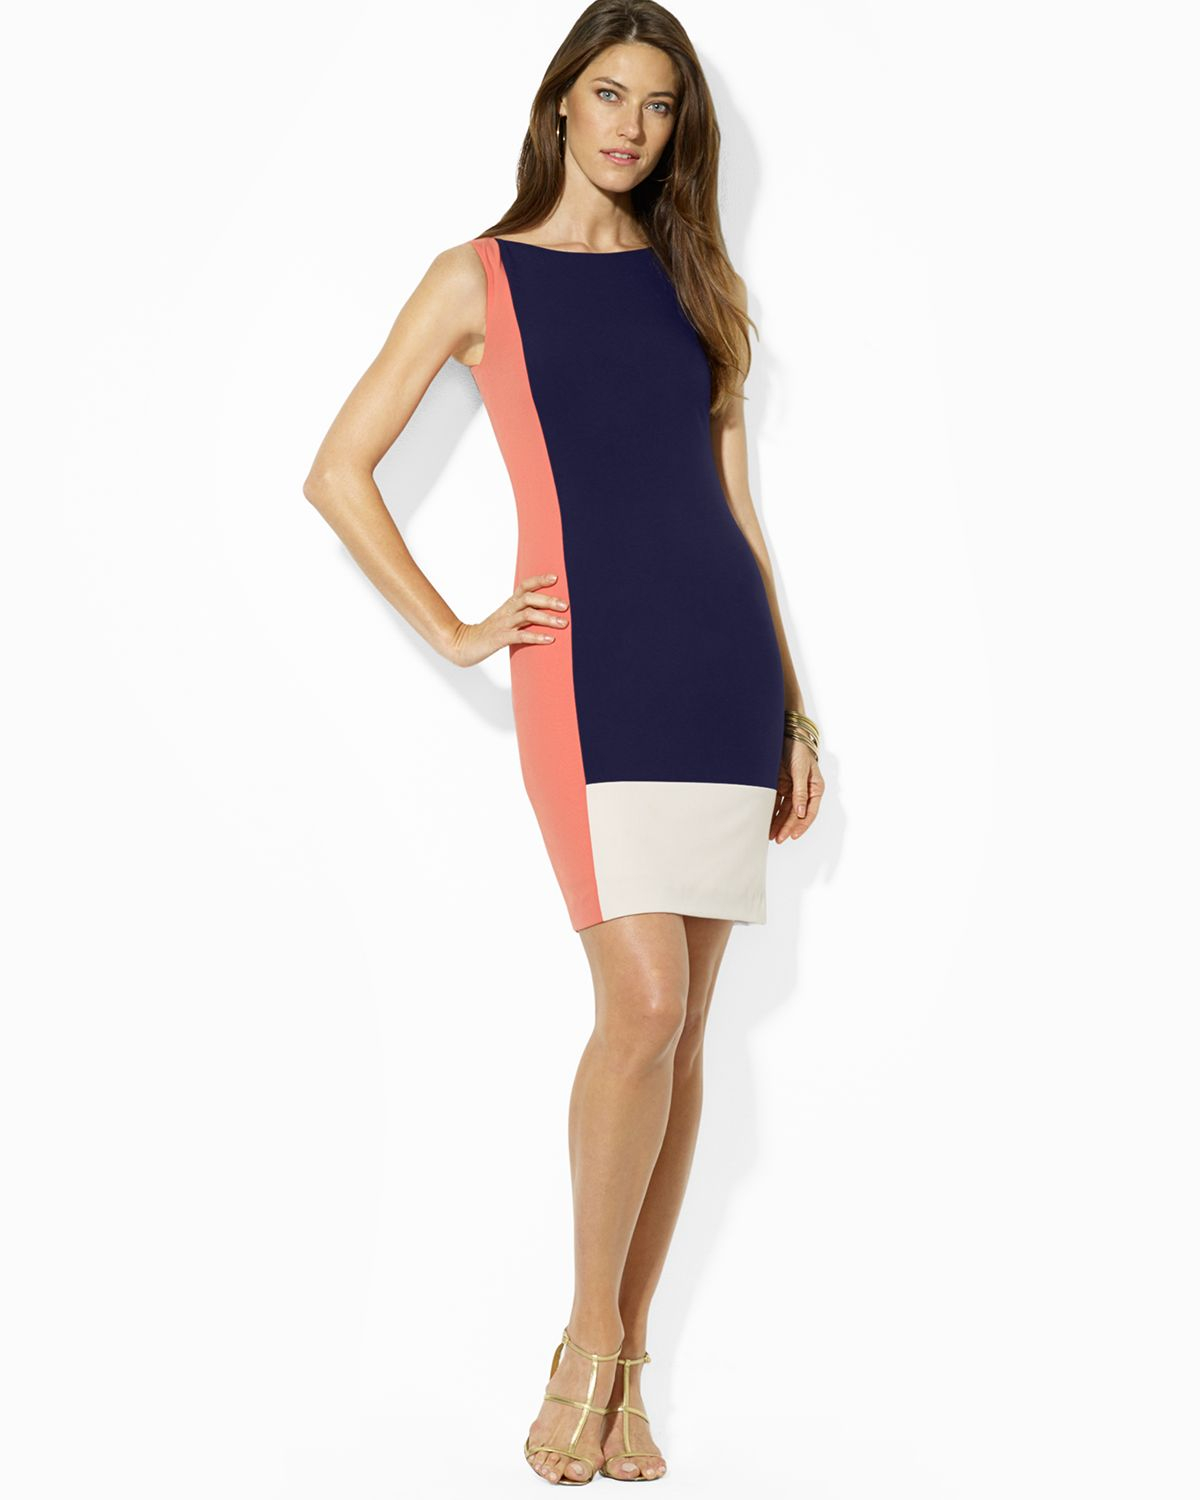 Ralph Lauren Colorblock Dress